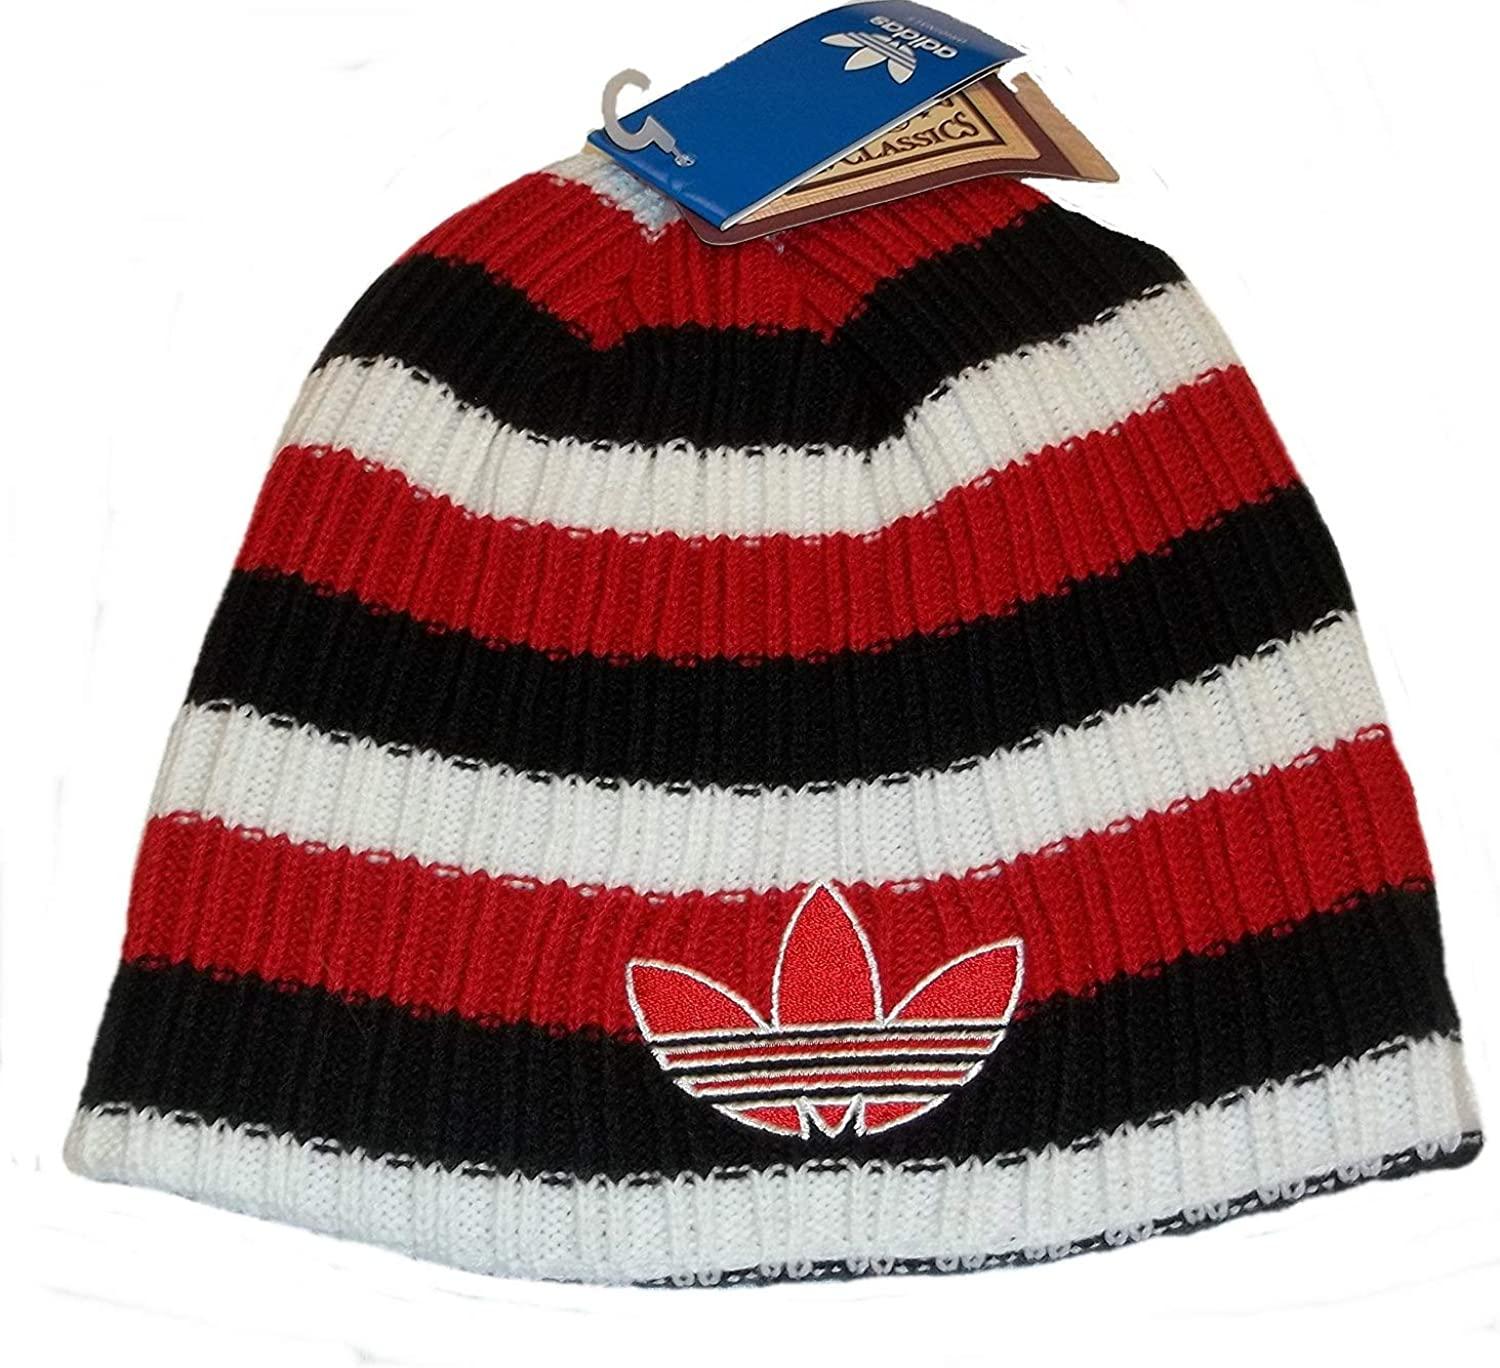 Chicago Bulls Striped Cuffless Knit NBA Adidas Officially Licensed Hat